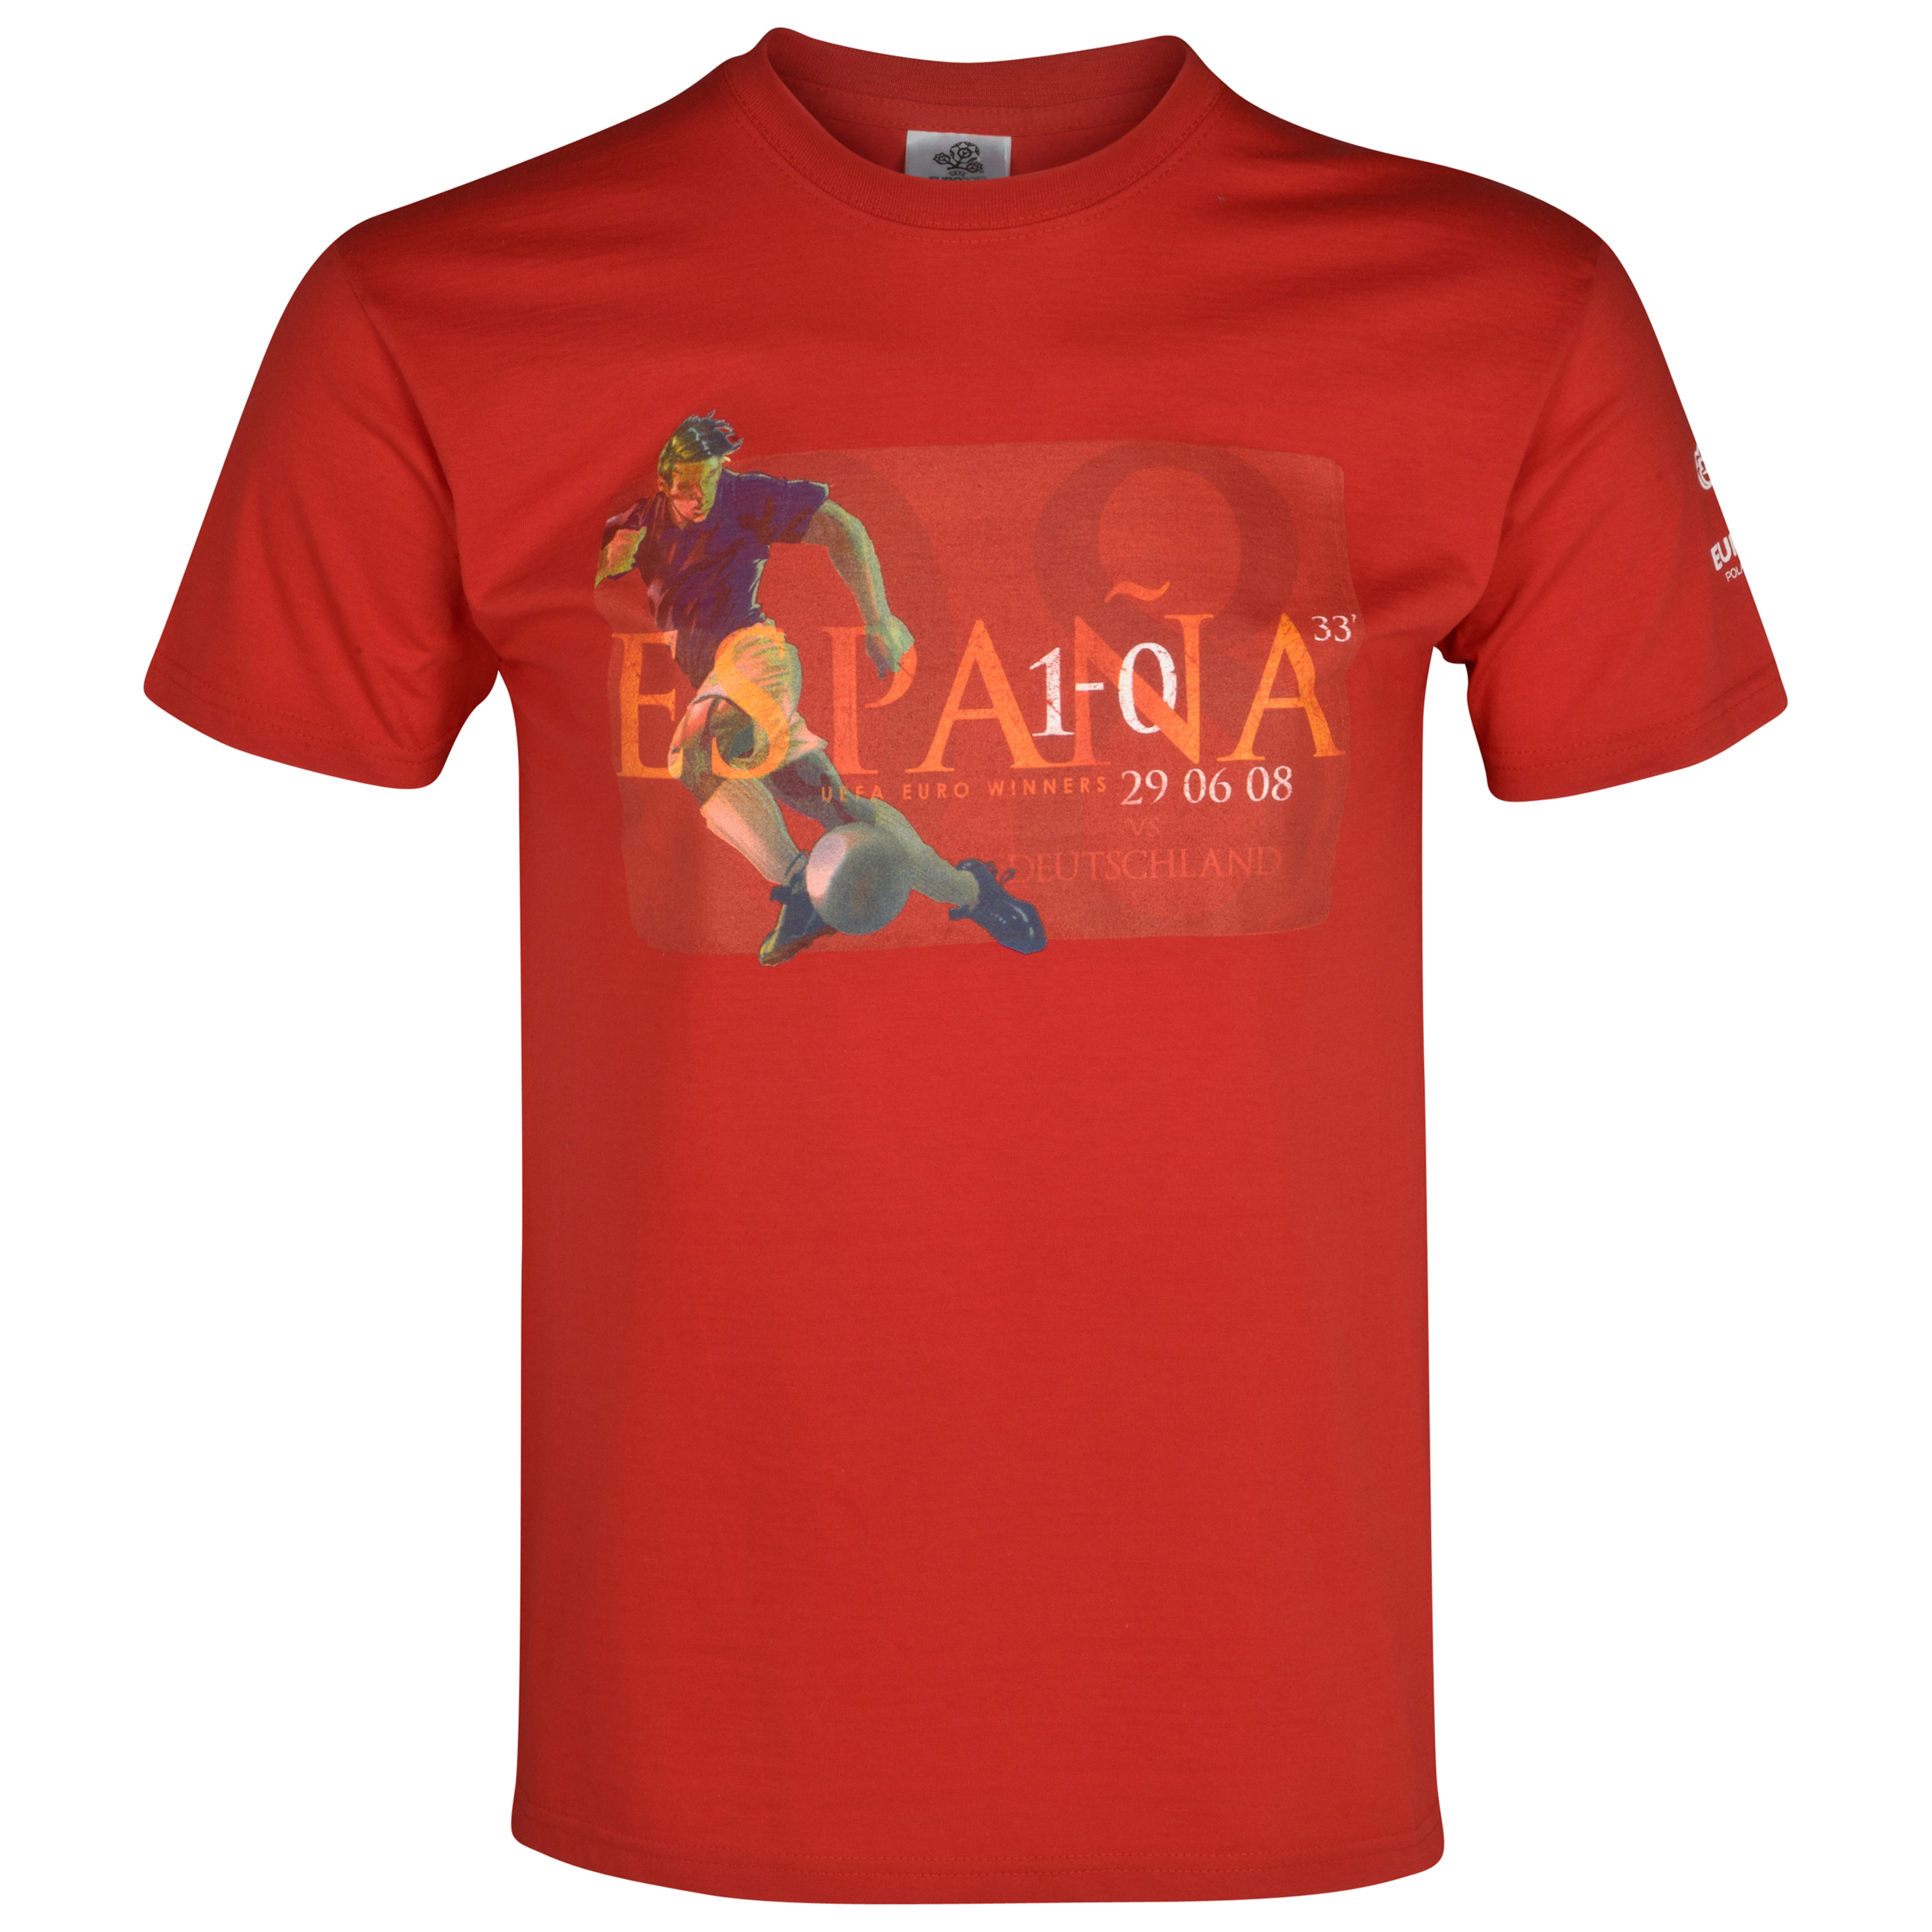 Euro 2012 Spain Winners 2008 T-Shirt - Red